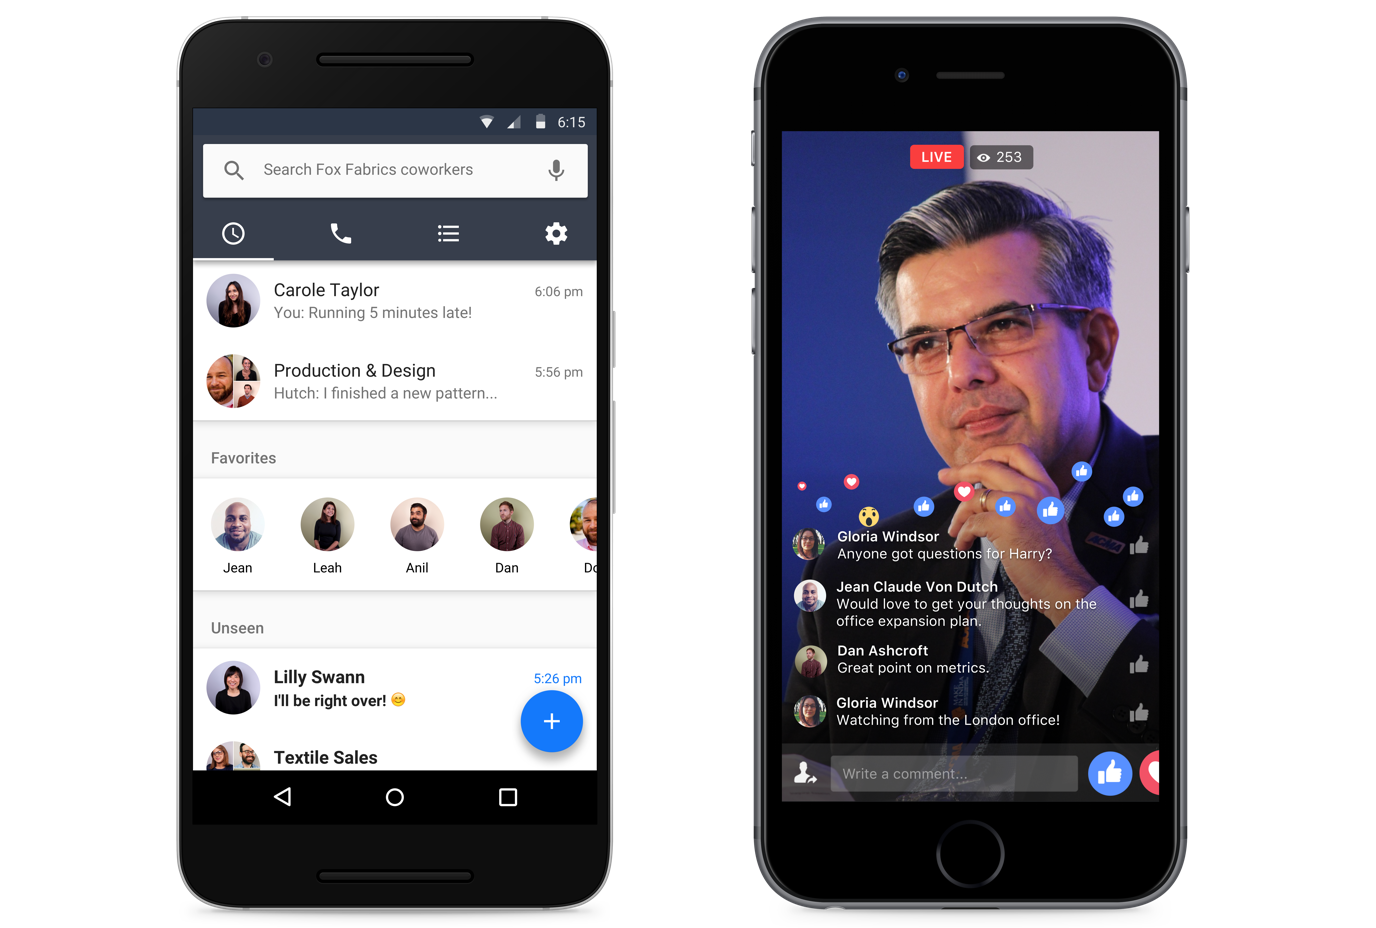 Facebook Workplace 1.0 for iOS chat teaser 001